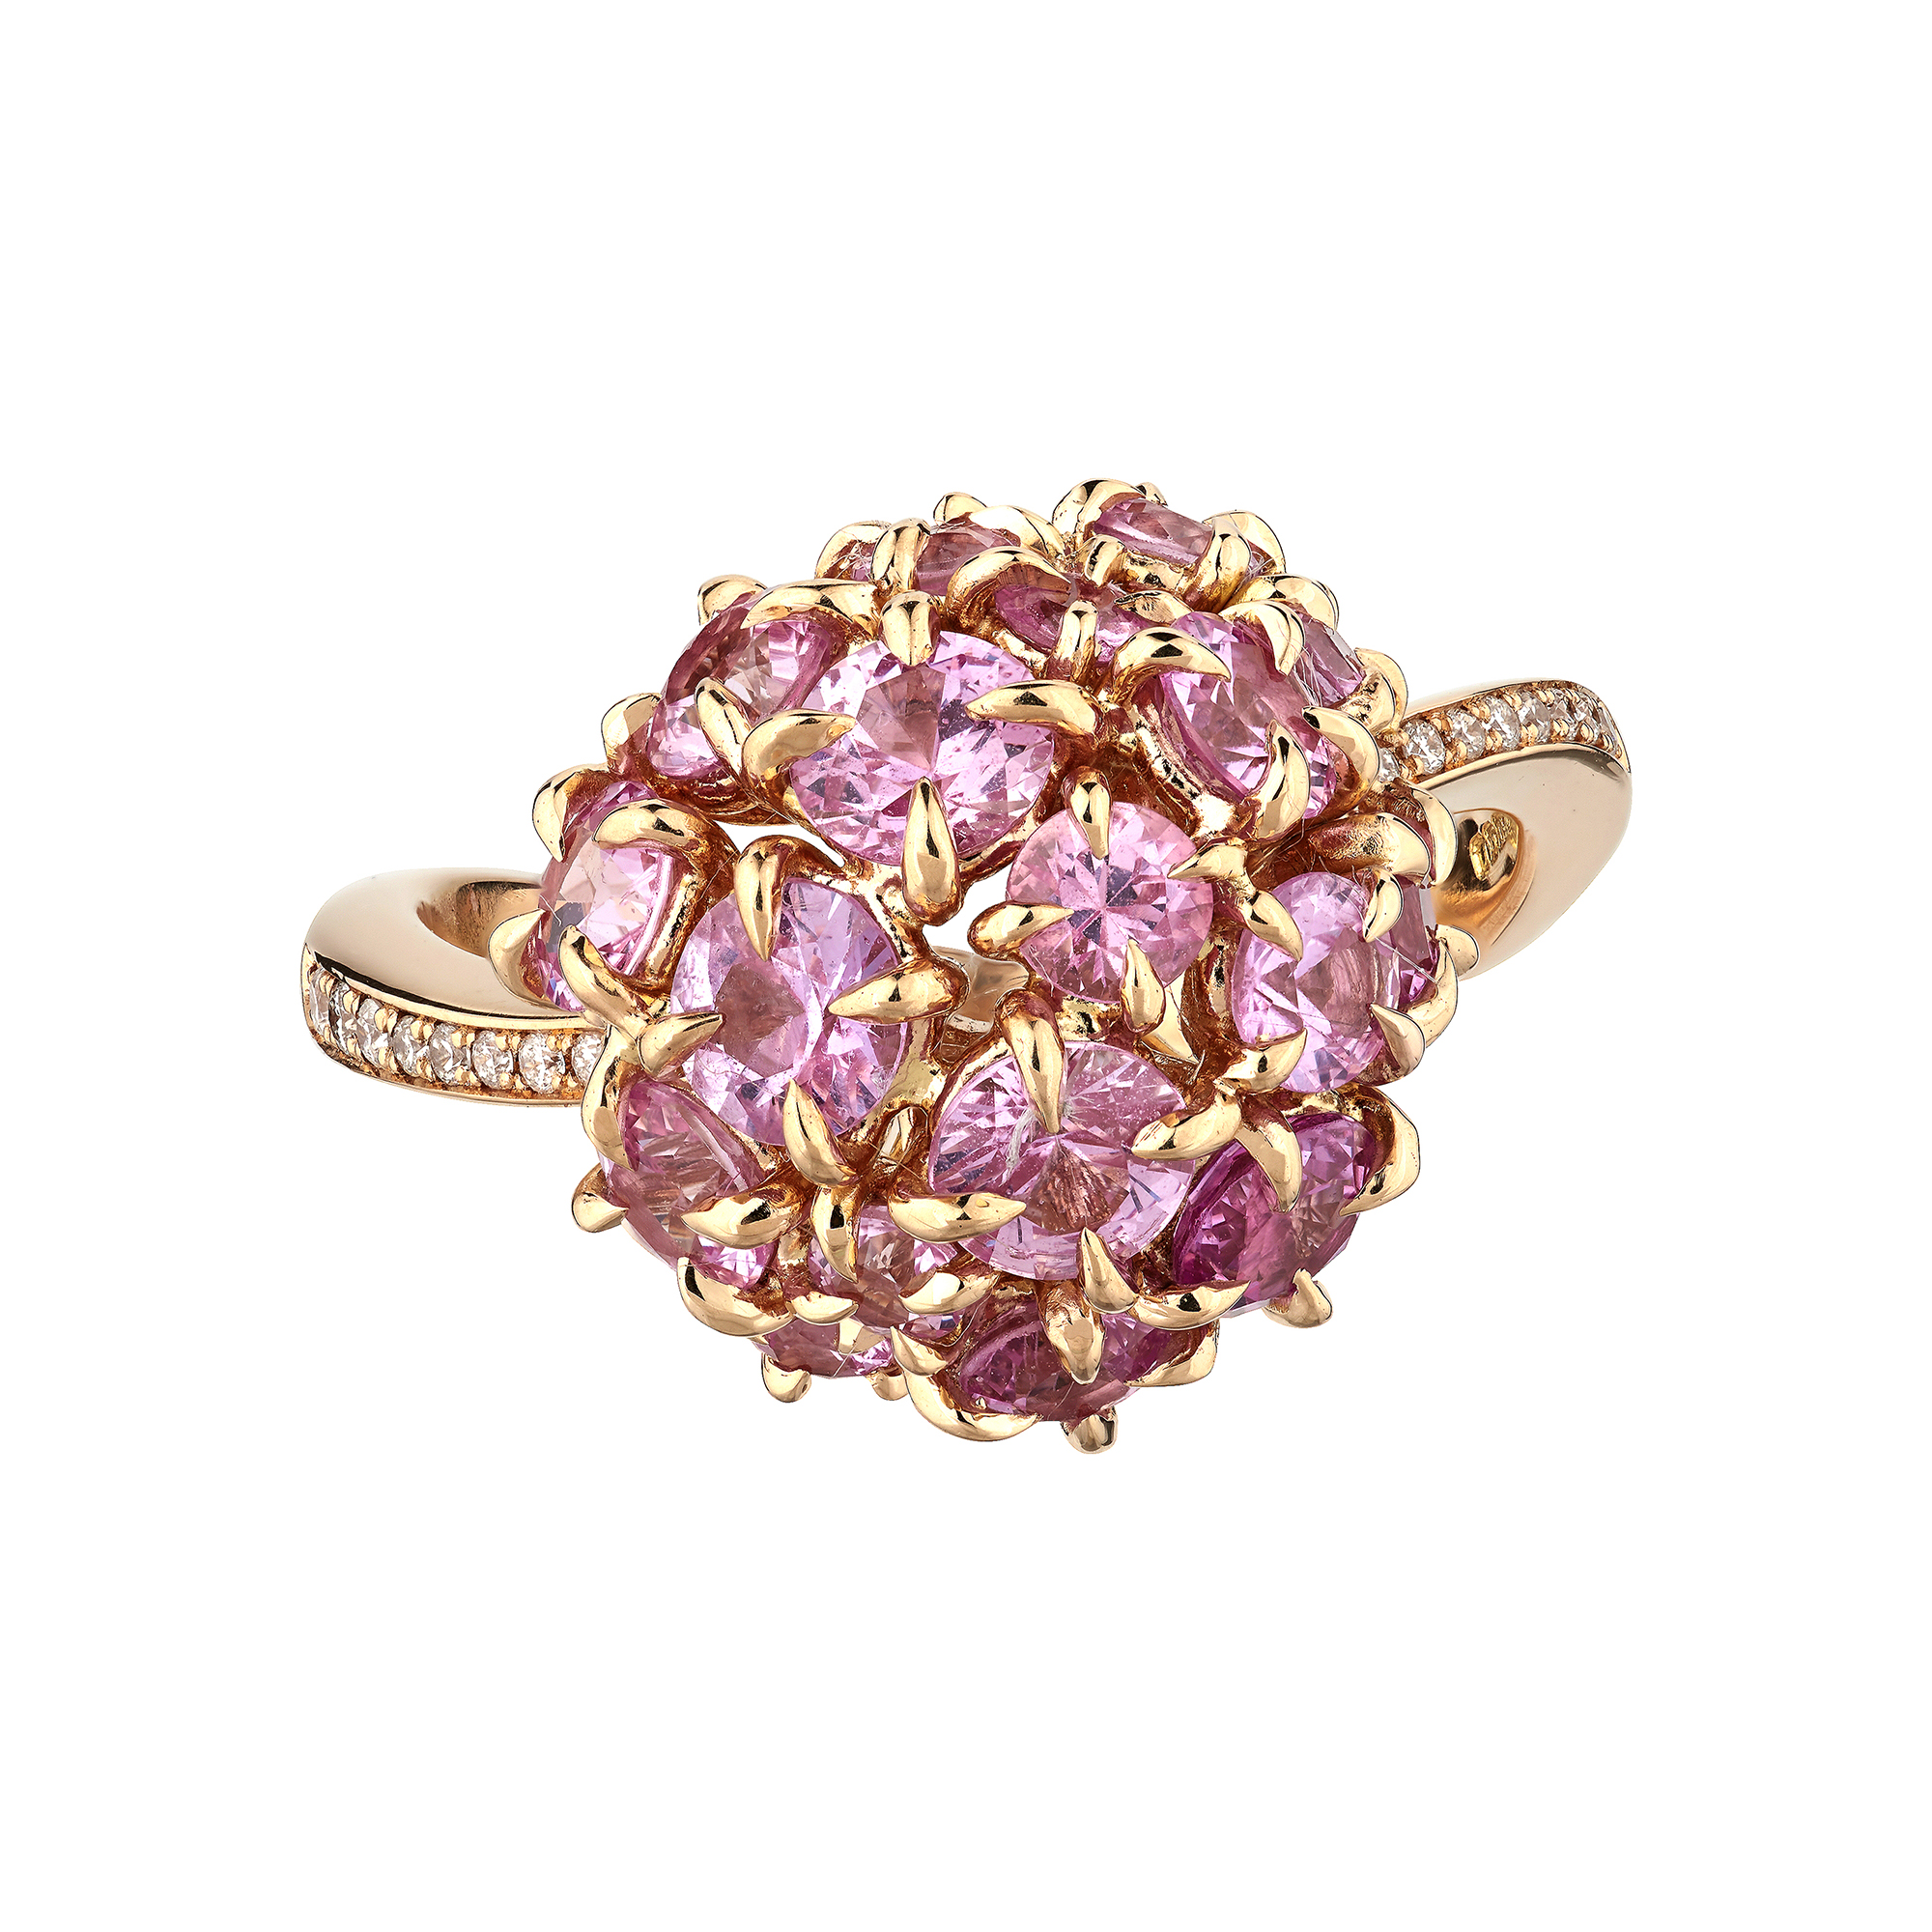 18ct yellow gold pink sapphire cluster ring - Baroque Bespoke Jewellery